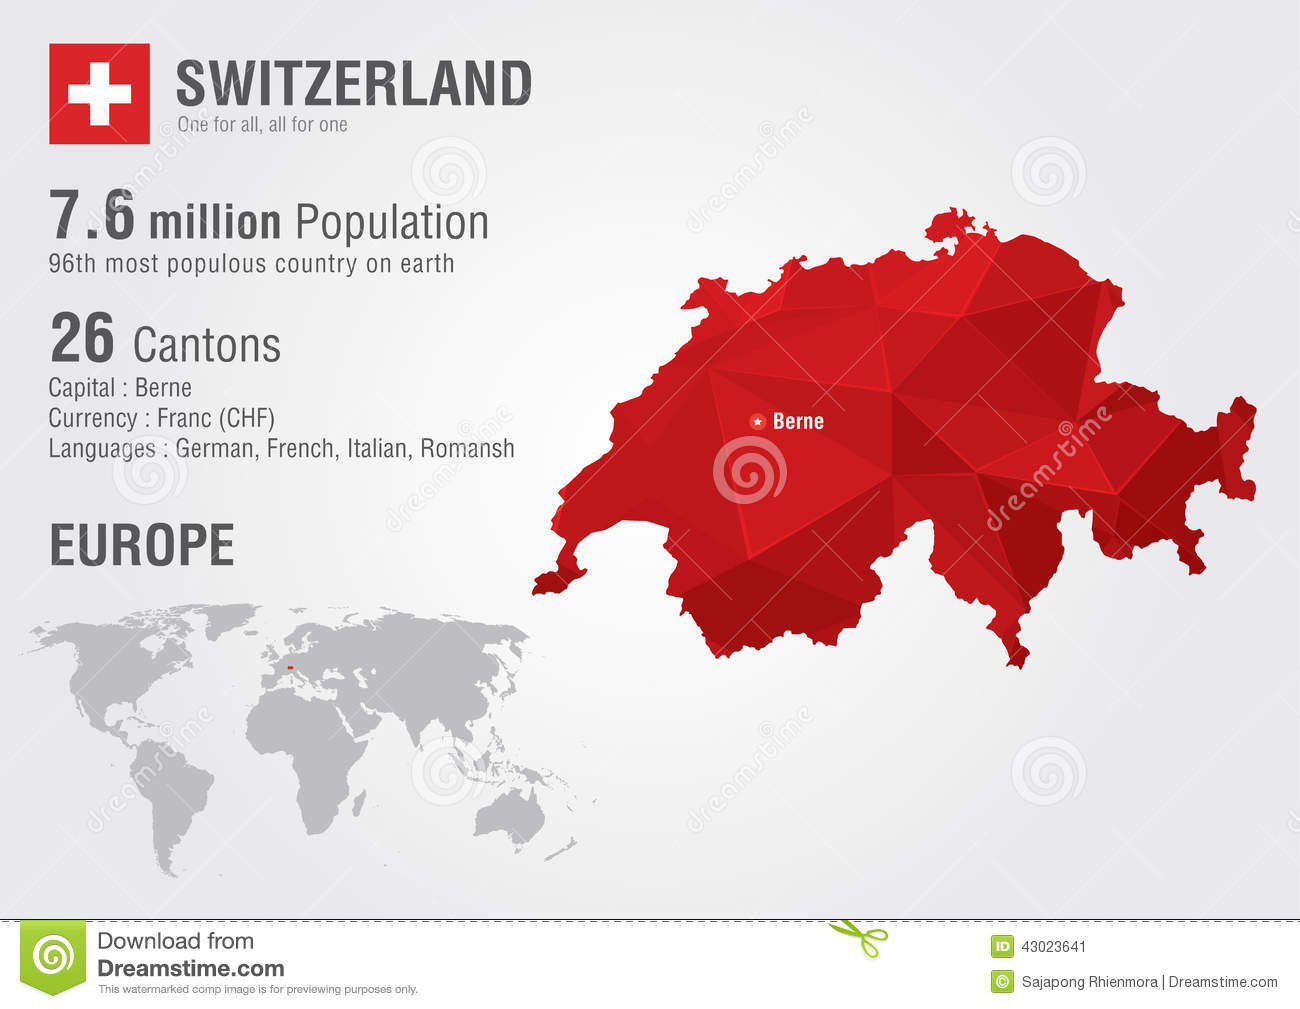 Switzerland World Map Switzerland World Map With A Pixel Diamond Texture. Stock Vector  Switzerland World Map